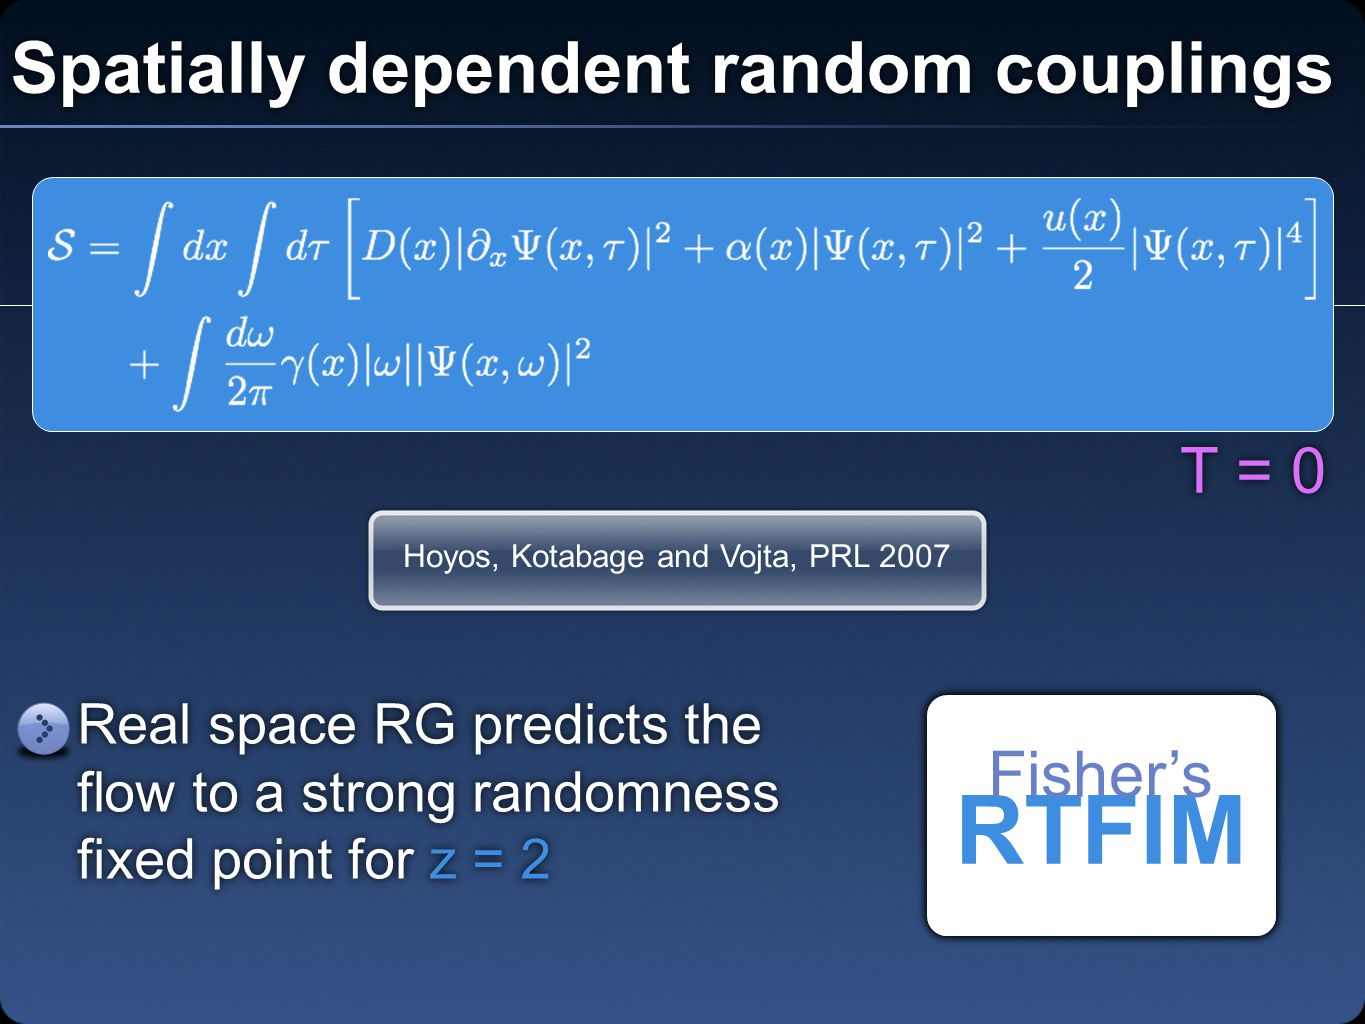 Spatially dependent random couplings Hoyos, Kotabage and Vojta, PRL 2007 Real space RG predicts the flow to a strong randomness fixed point for z = 2 RTFIM Fisher's T = 0